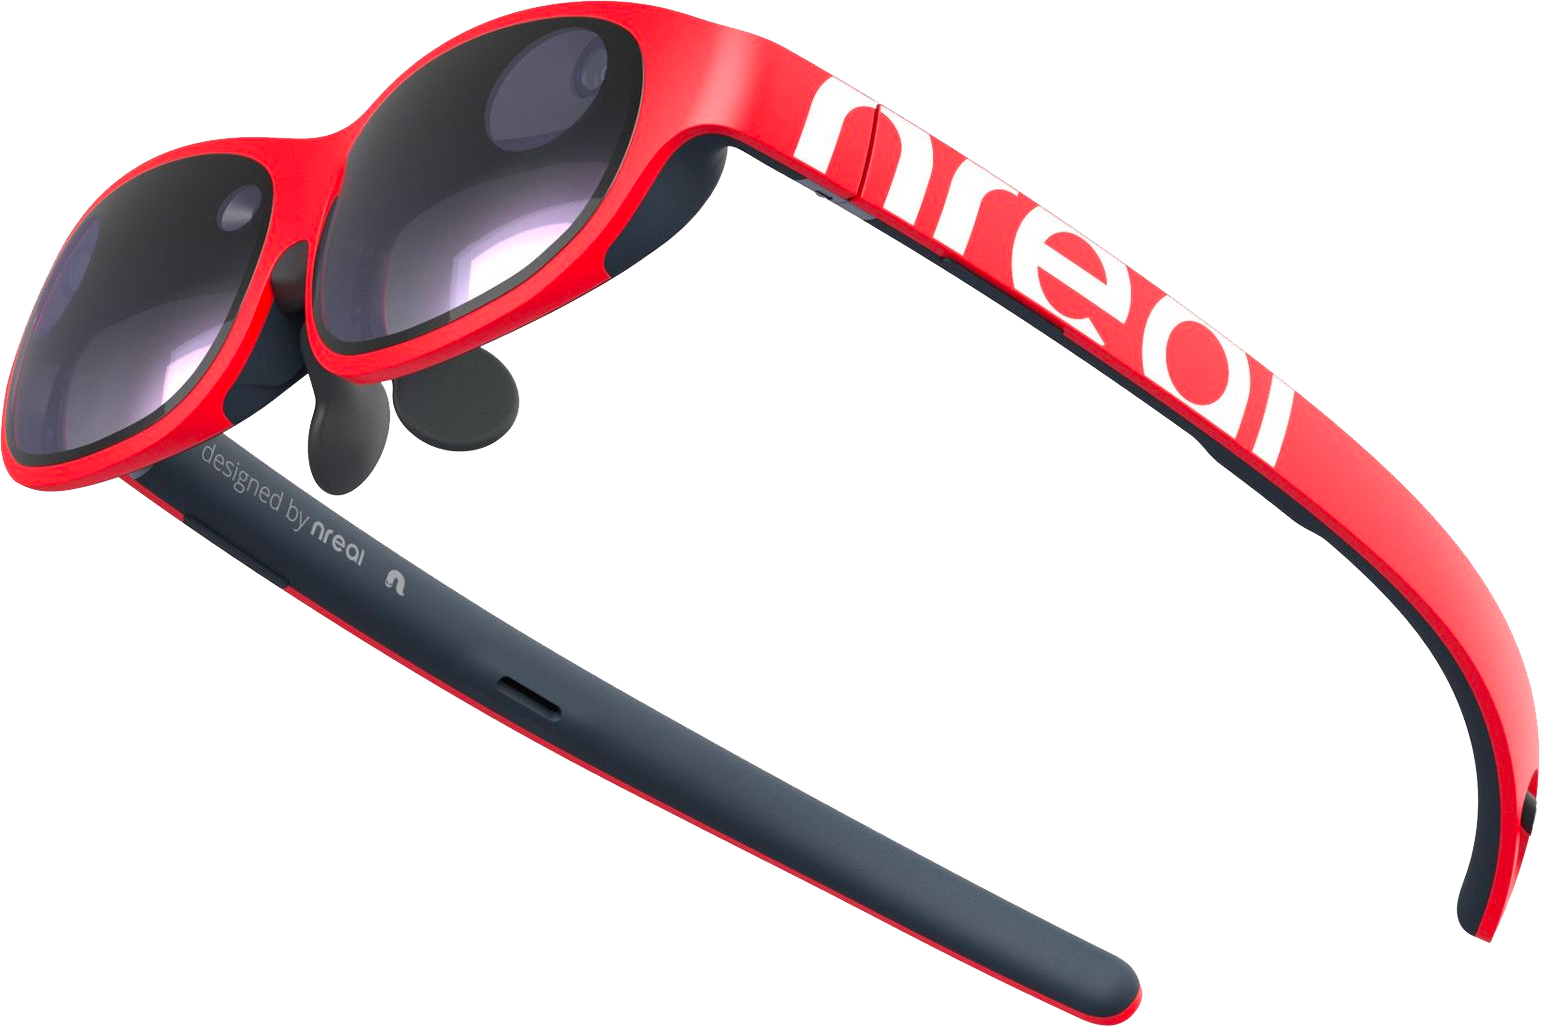 AR-glasses Nreal in red